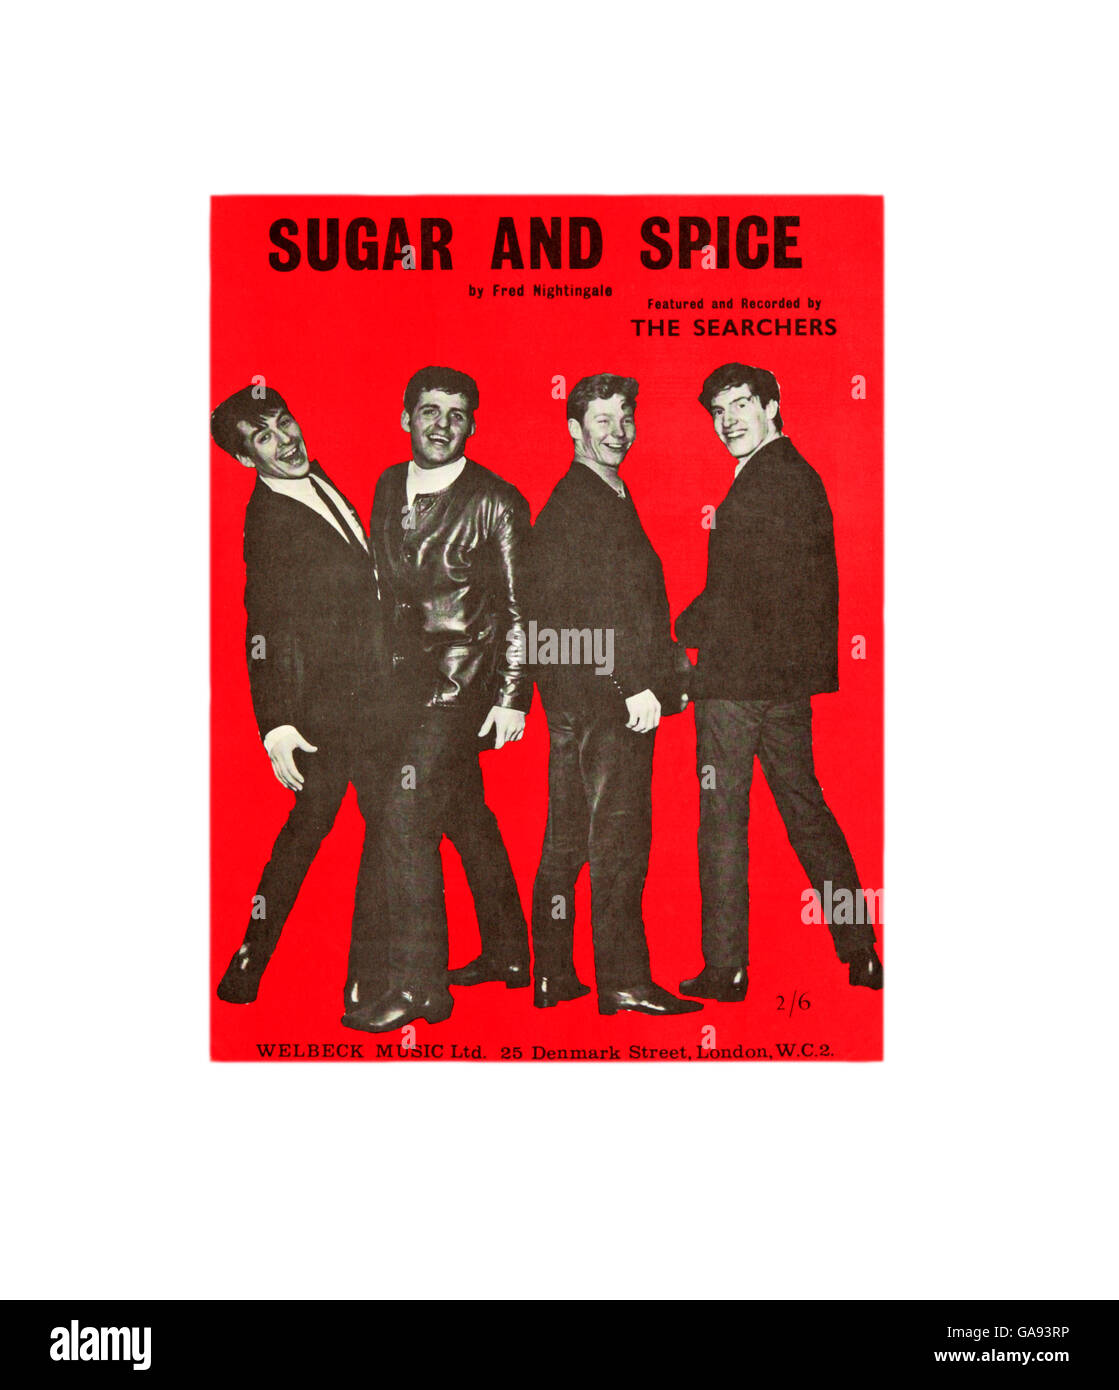 A sheet music cover for Sugar and Spice by The Searchers. - Stock Image